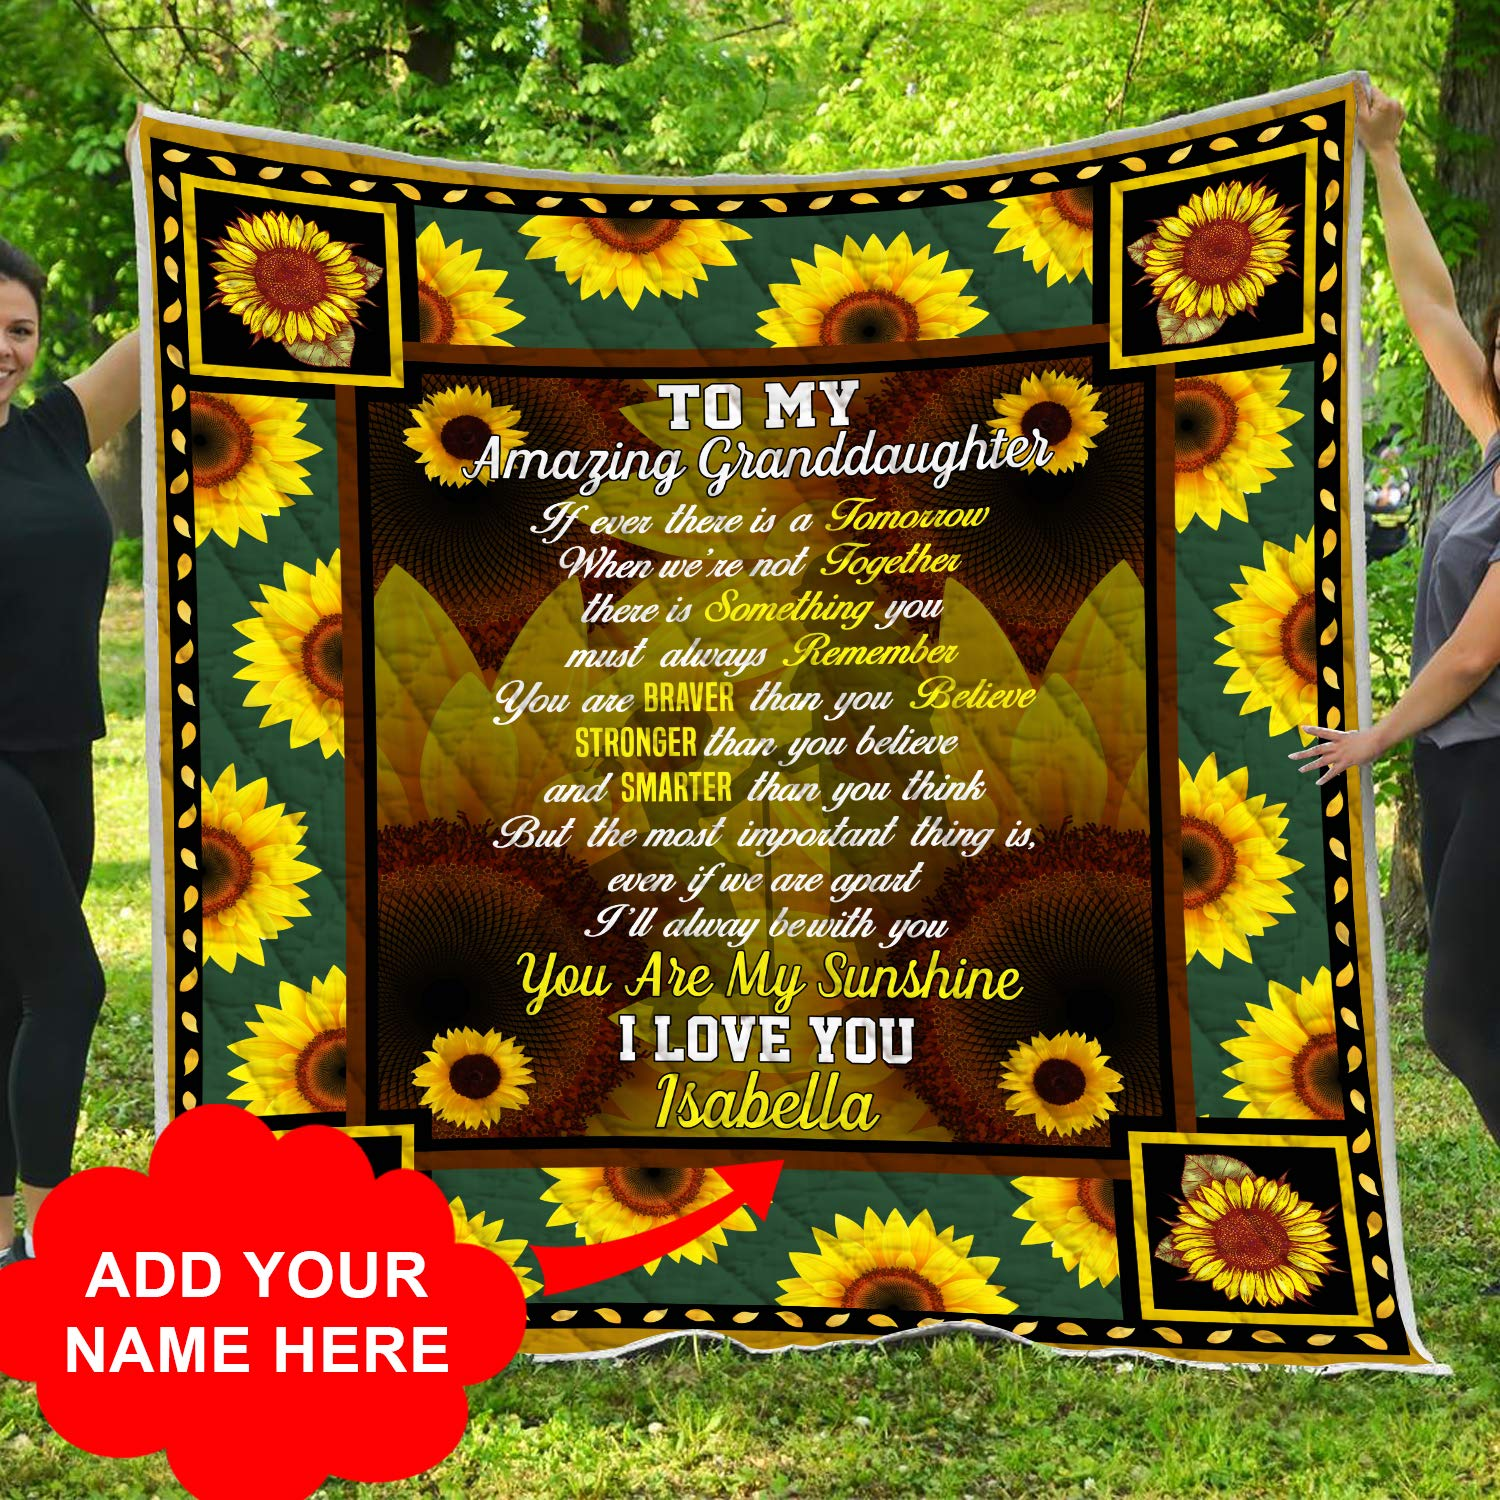 Personalized To My Granddaughter You Are My Sunshine Sunflower Quilt Blanket Quilted Customized Christmas Birthday Little Girl Gifts from Grandparents Grandmother Grandma Grandfather Grandpa Papa Nana